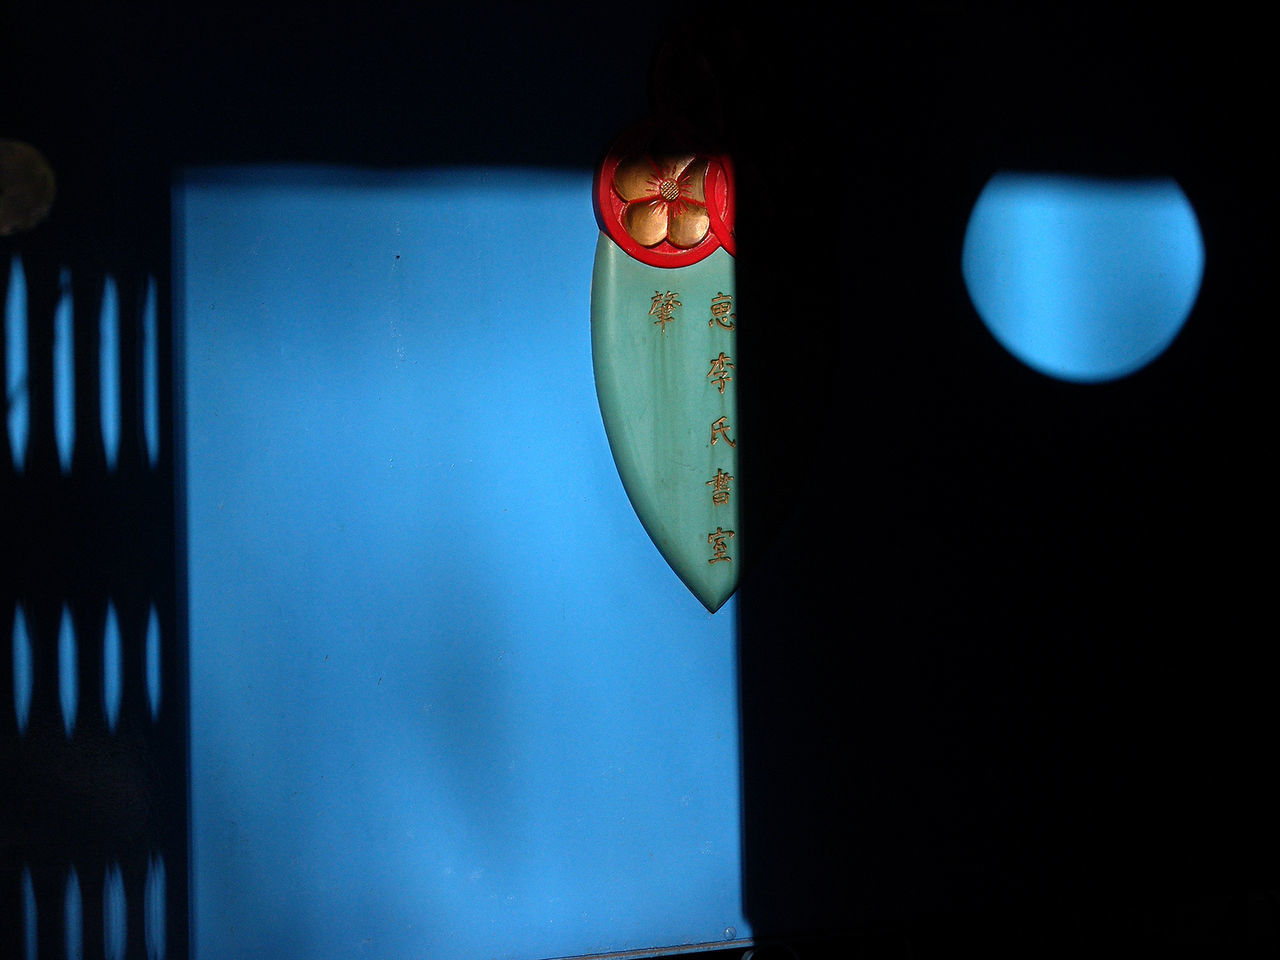 EyeEmNewHere Blue Close-up Day Entrance To Chinese Association Indoors  Light And Shadow No People Red